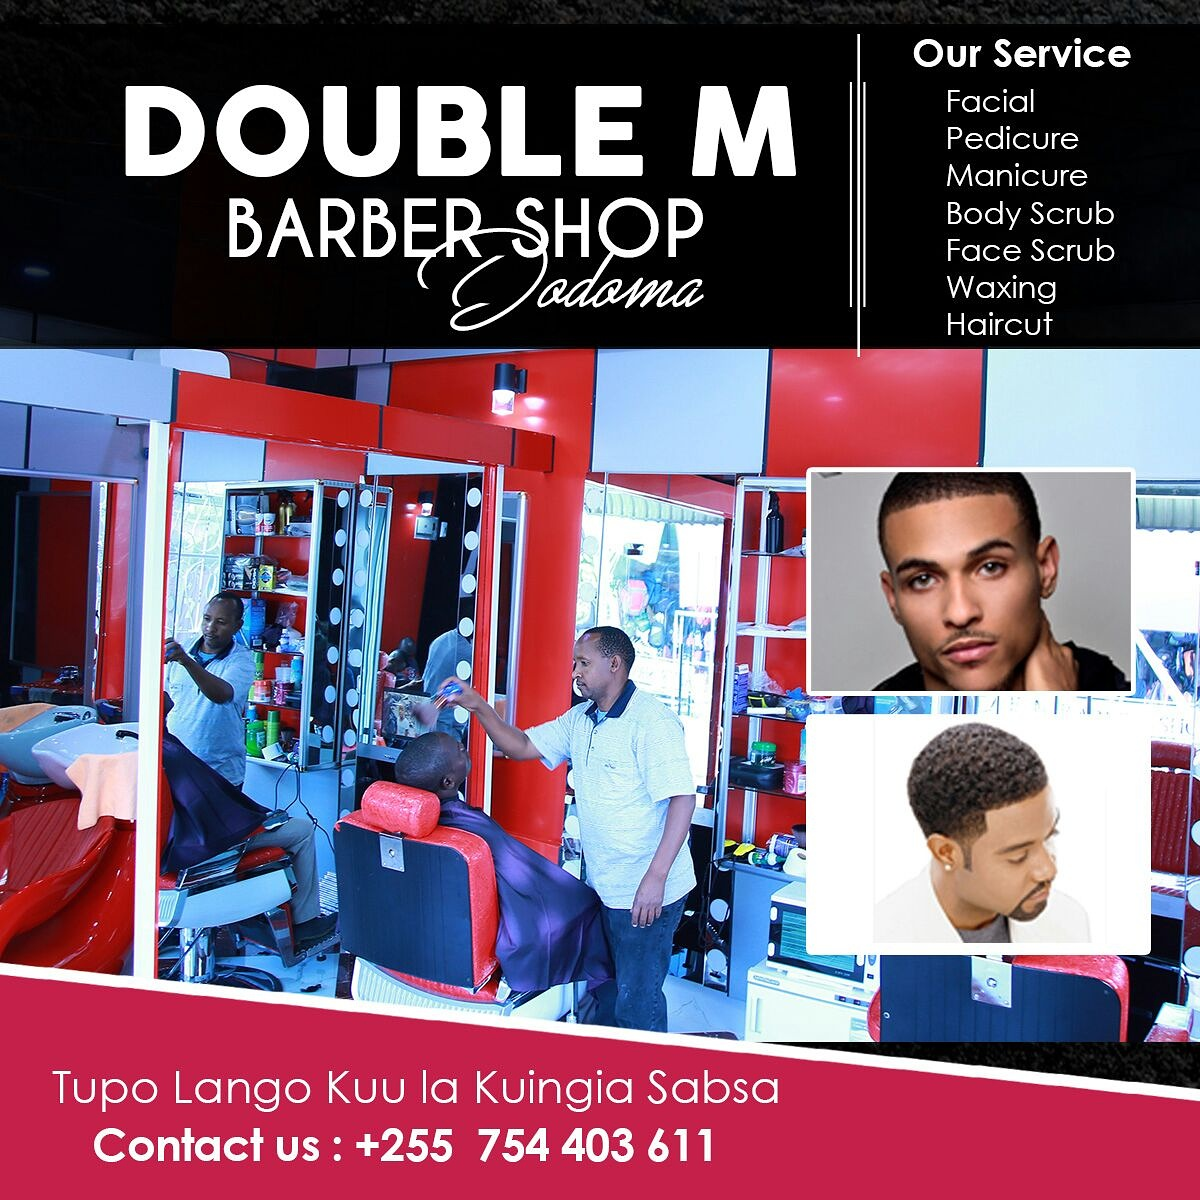 DOUBLE M BARBER SHOP